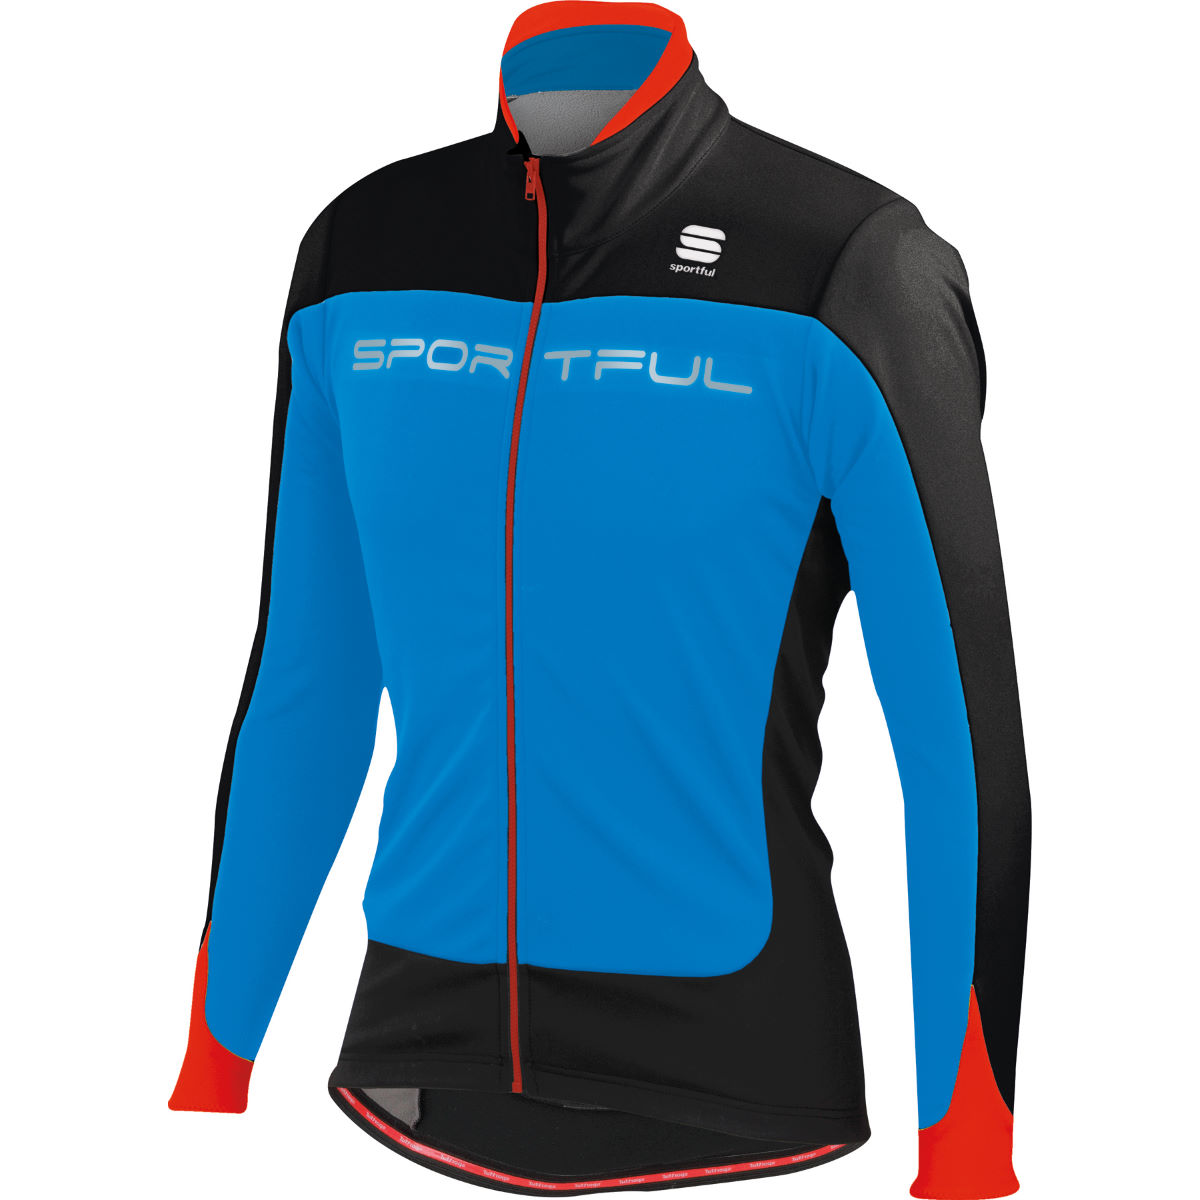 Veste Sportful Flash Softshell - M Blue/Black/Red Coupe-vents vélo